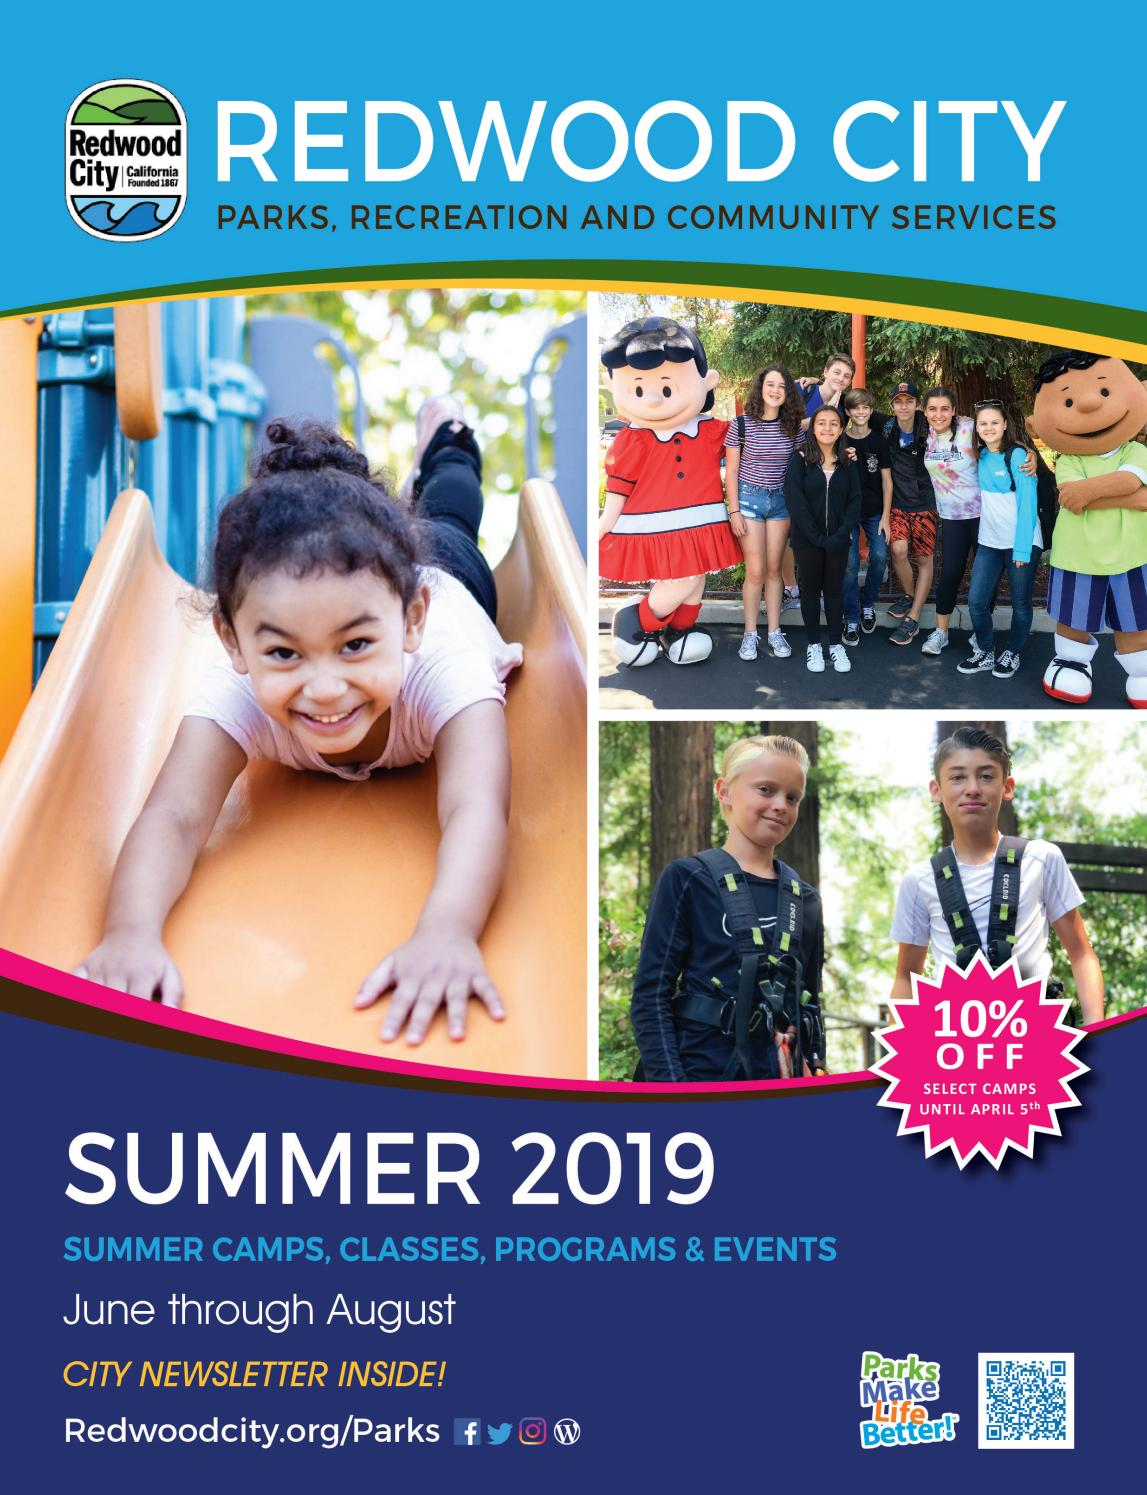 bcdd4e6511e9 Summer Activity Guide 2019 by Redwood City Parks, Recreation & Community  Services - issuu